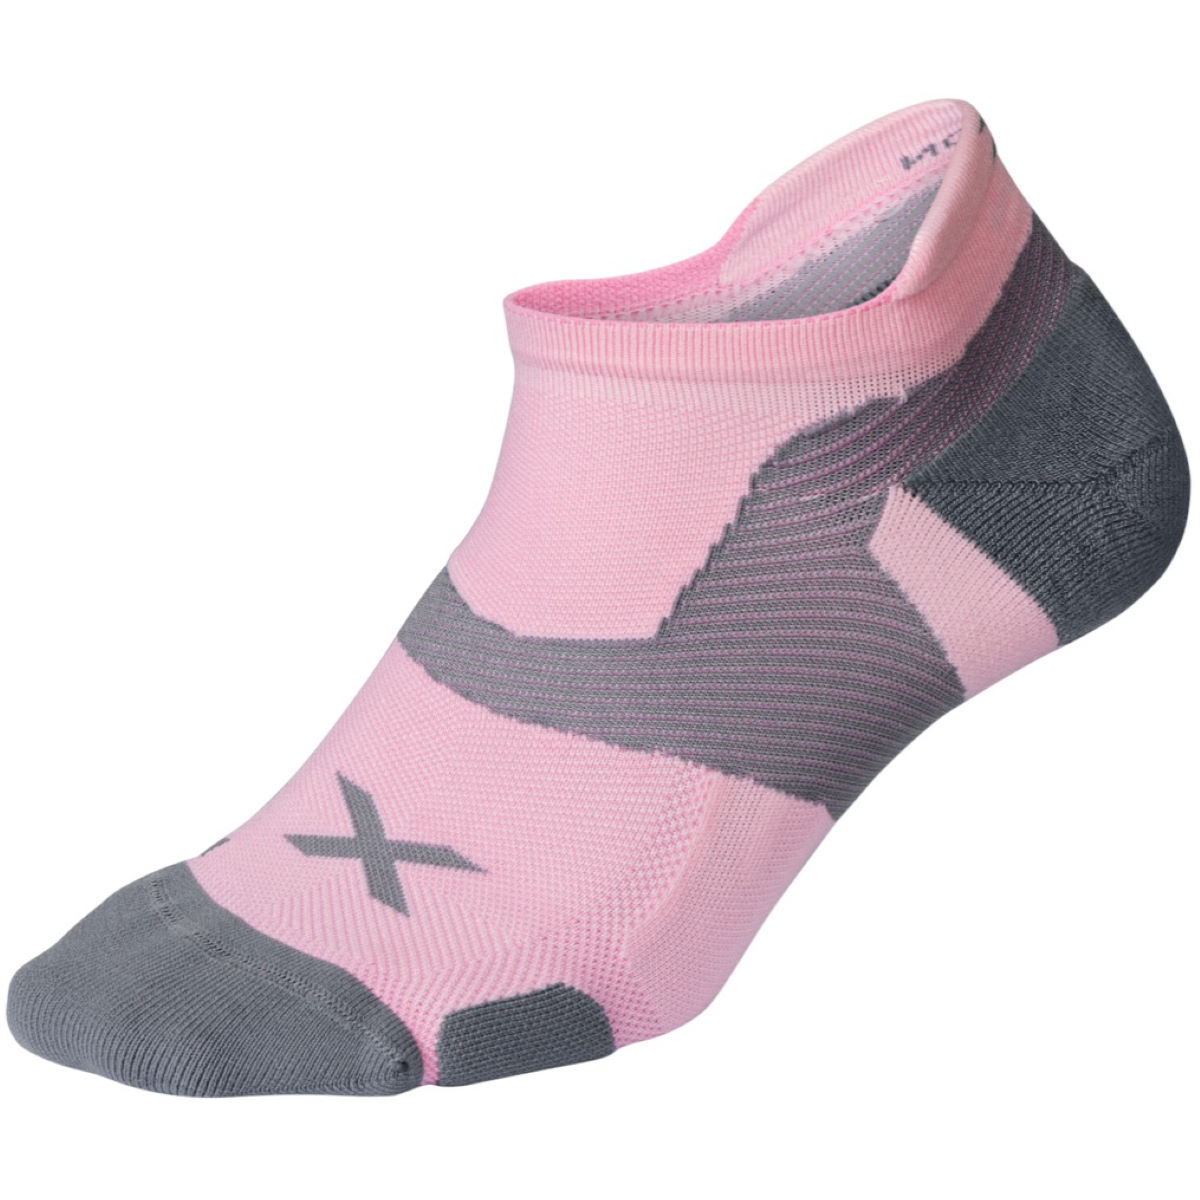 Chaussettes 2XU Vectr Cushion No Show (roses) - M Dusty Pink/Grey